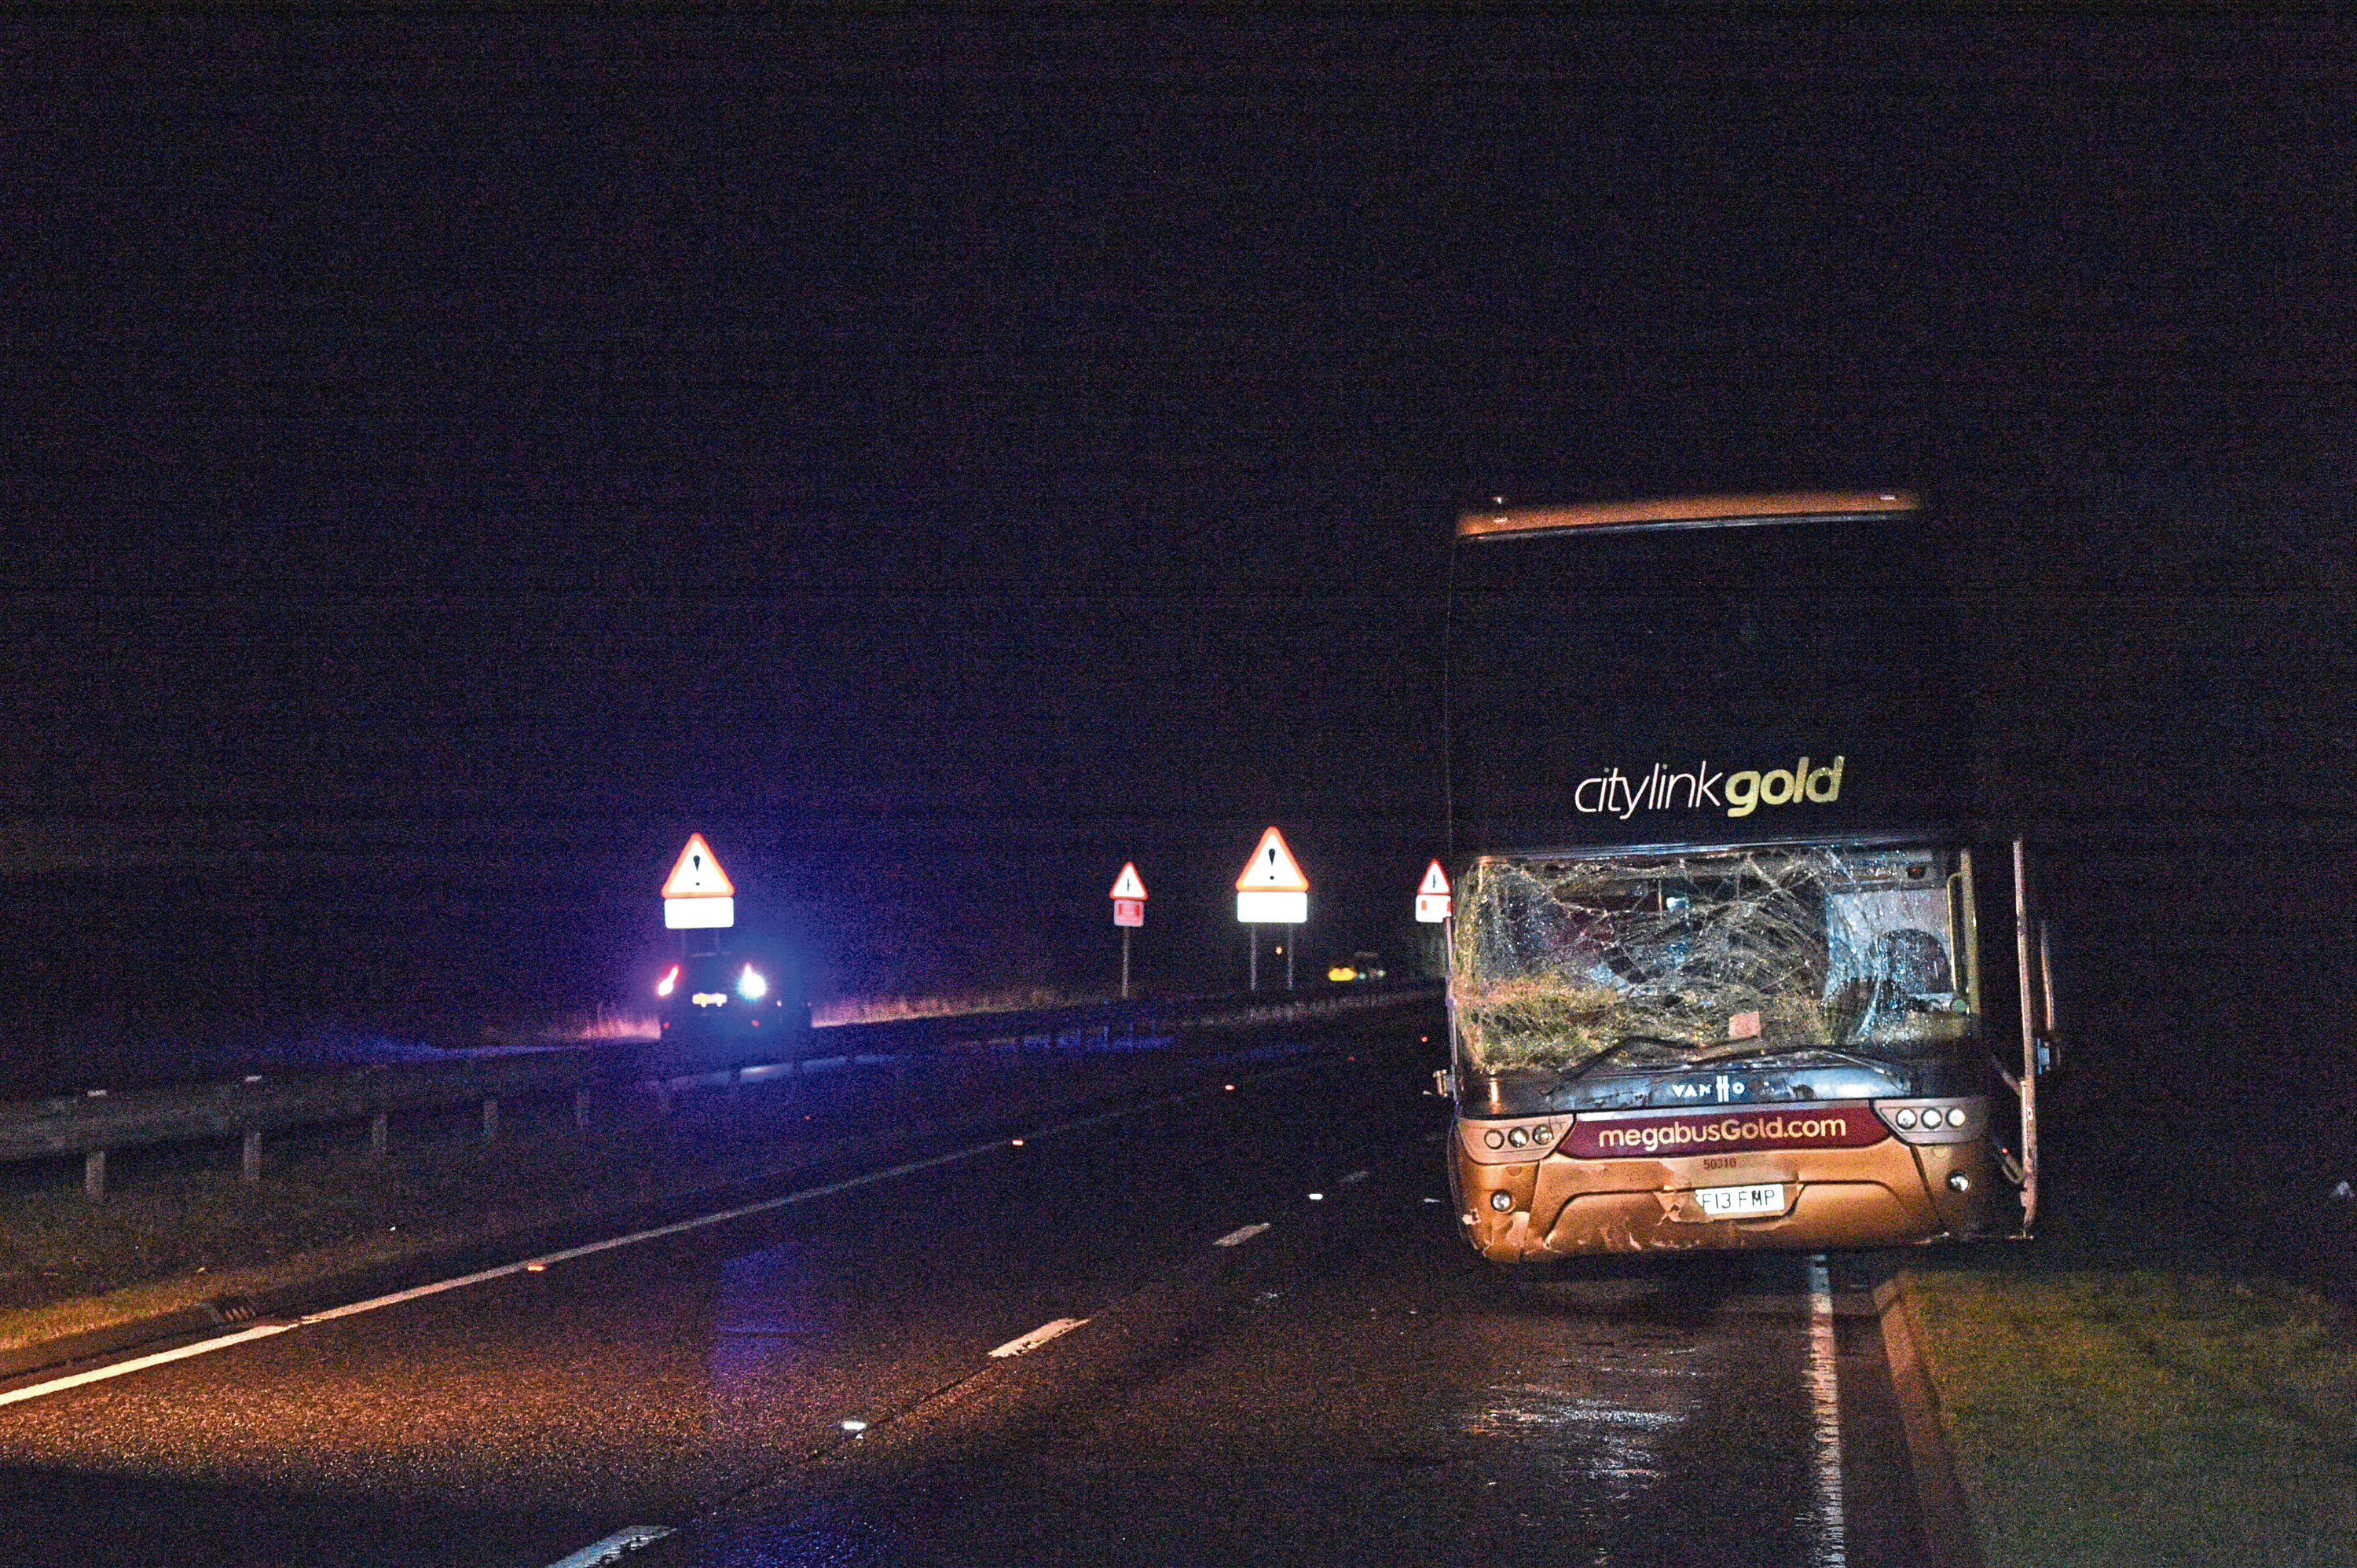 The aftermath of the crash on the A90 which killed three people